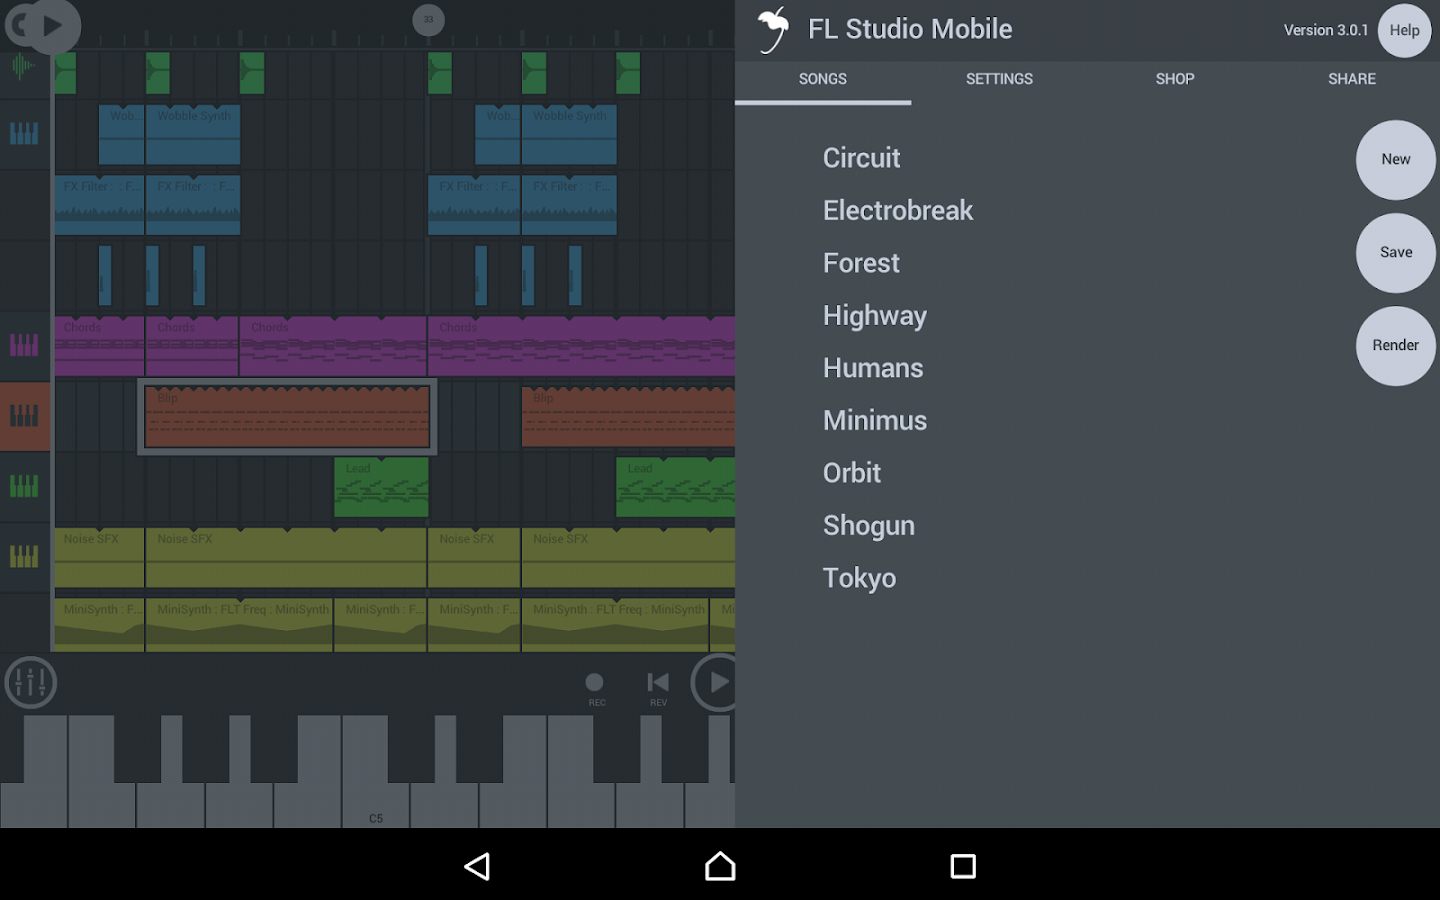 FL Studio Mobile Screenshot 8